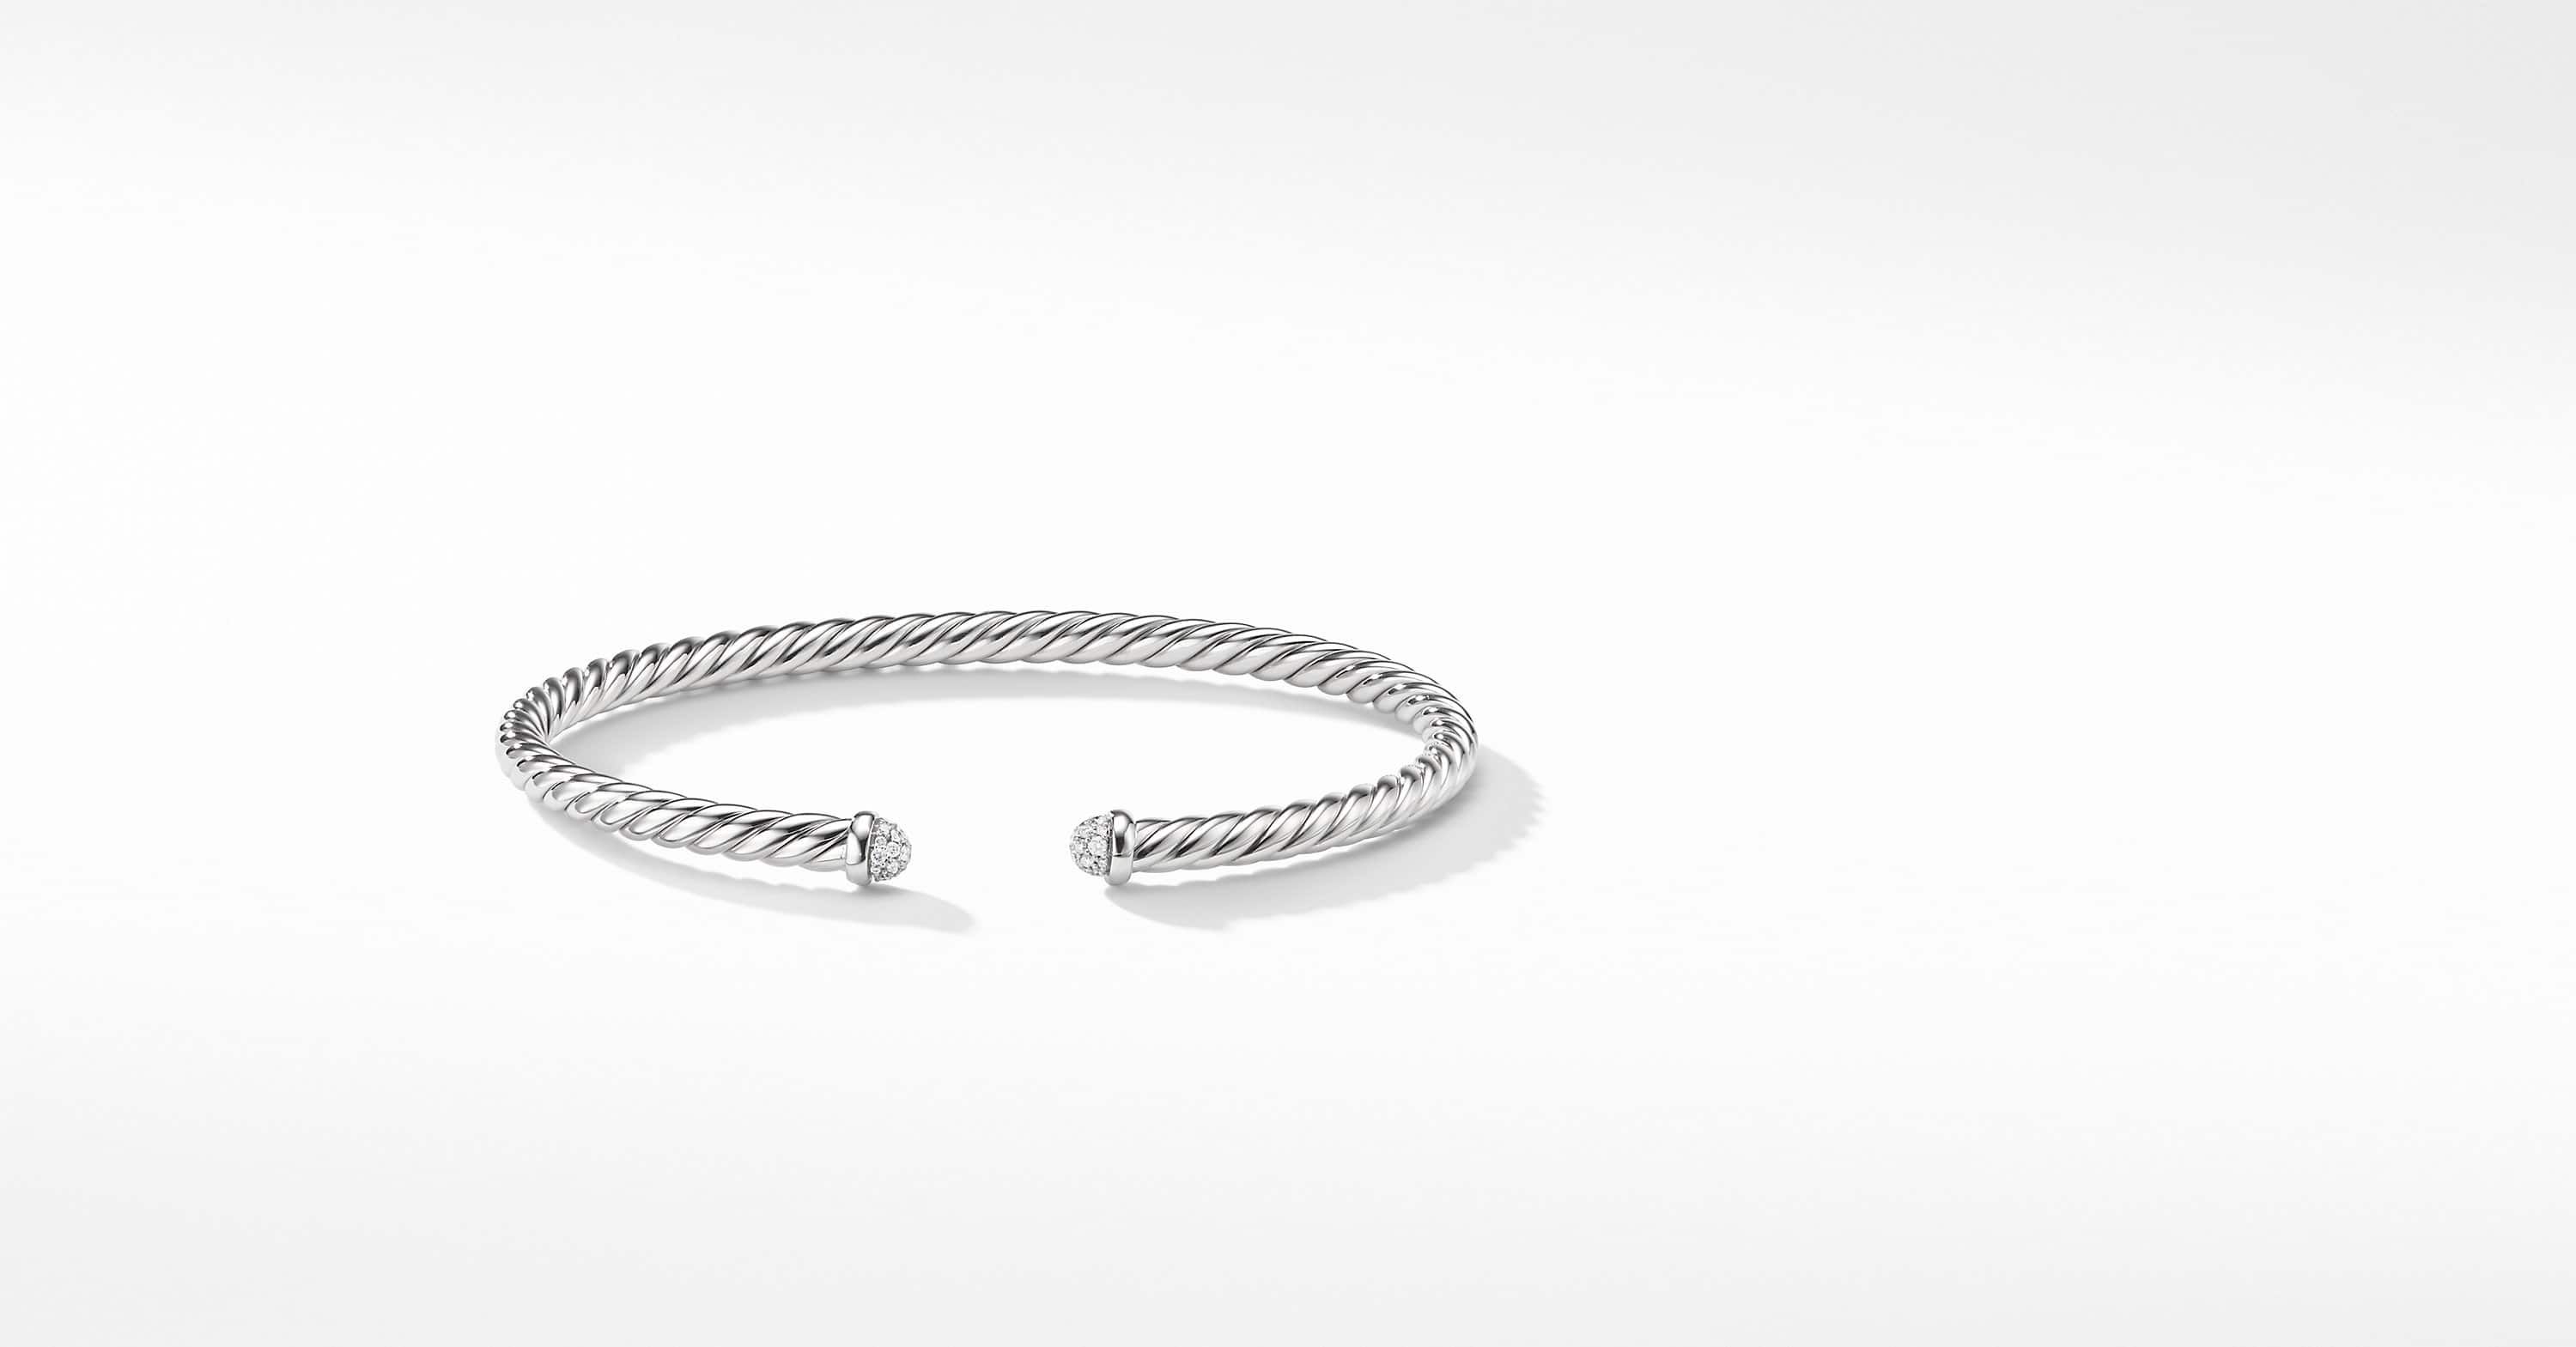 Cable Spira Bracelet with Diamonds in 18k White Gold, 4mm